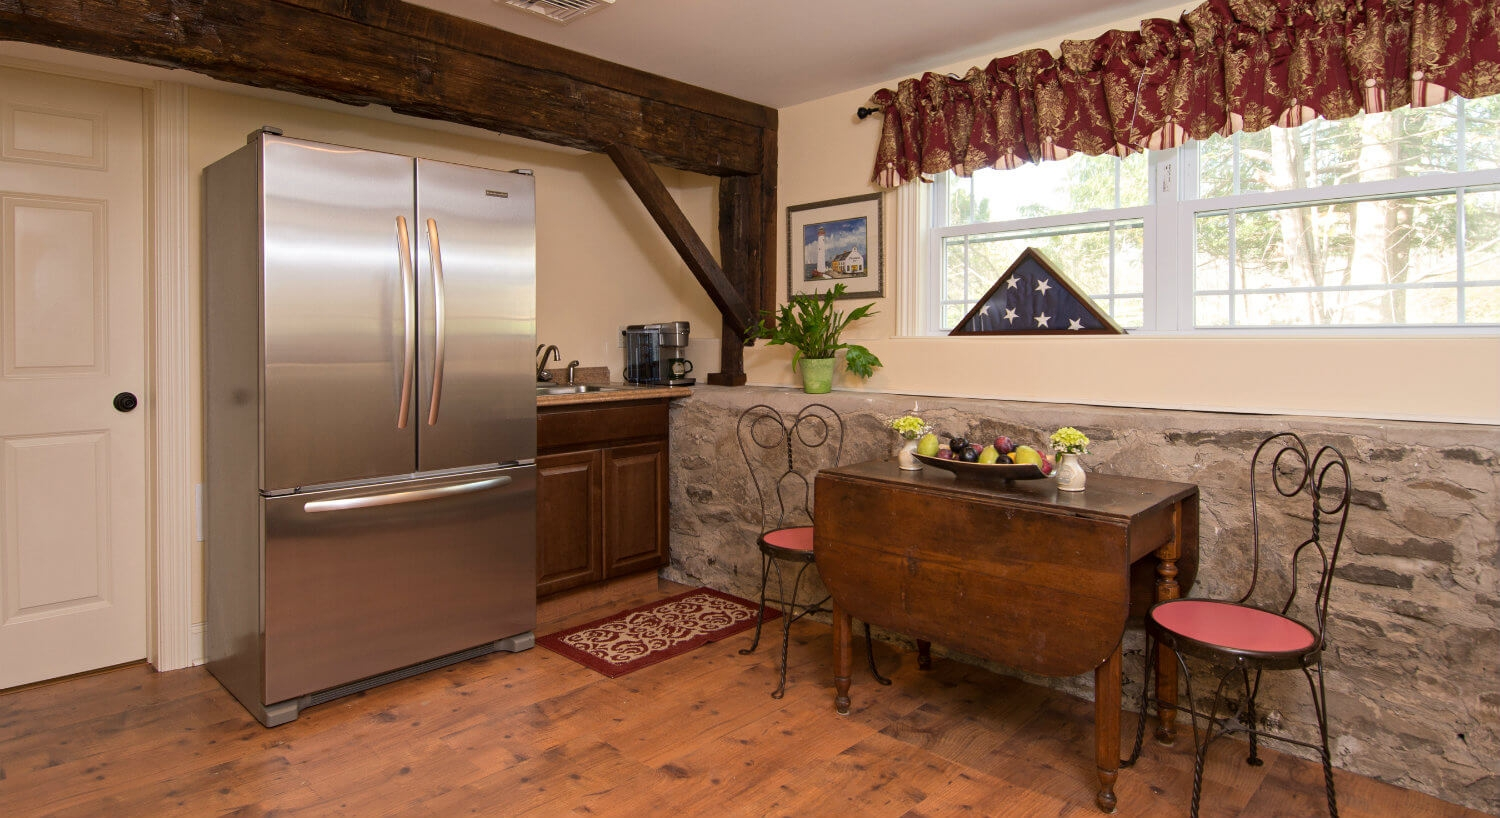 Cozy rustic kitchen with real stone wall includes a large stainless steel french door refrigerator